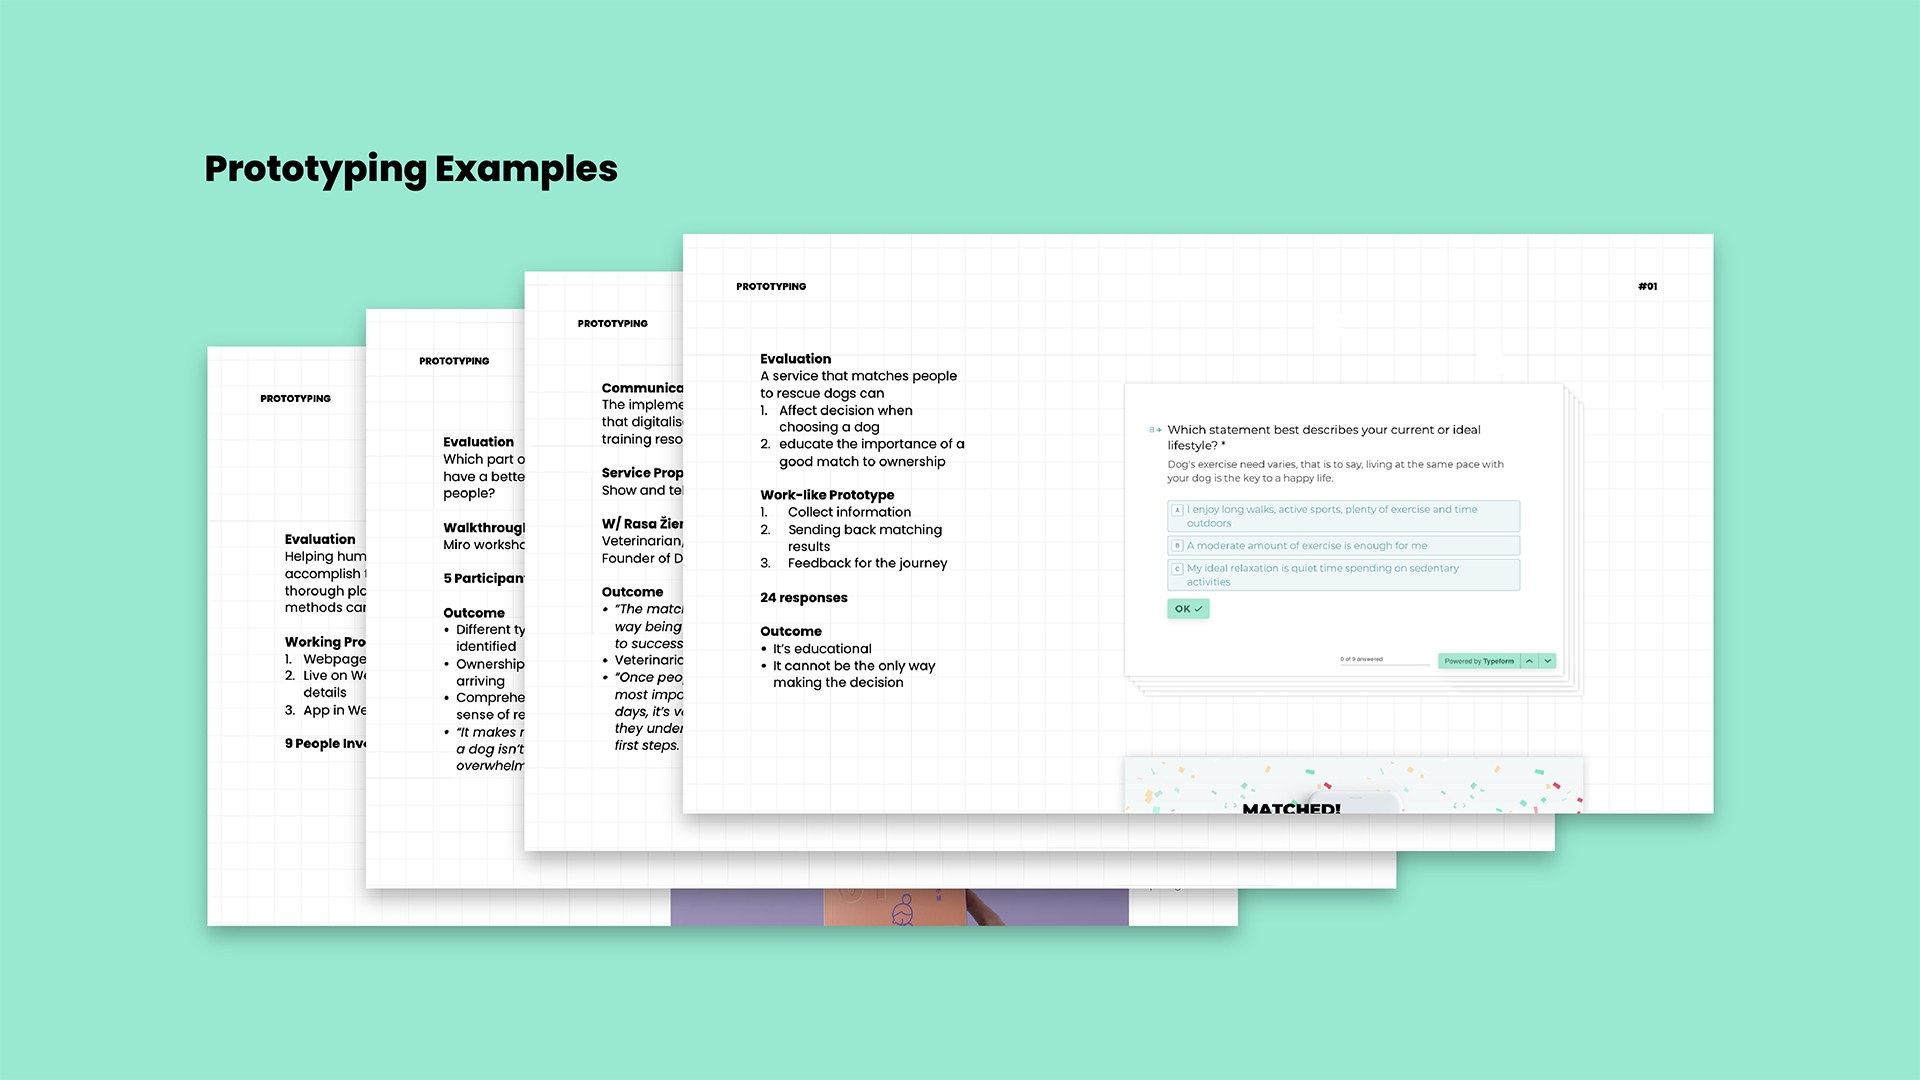 Prototyping Examples